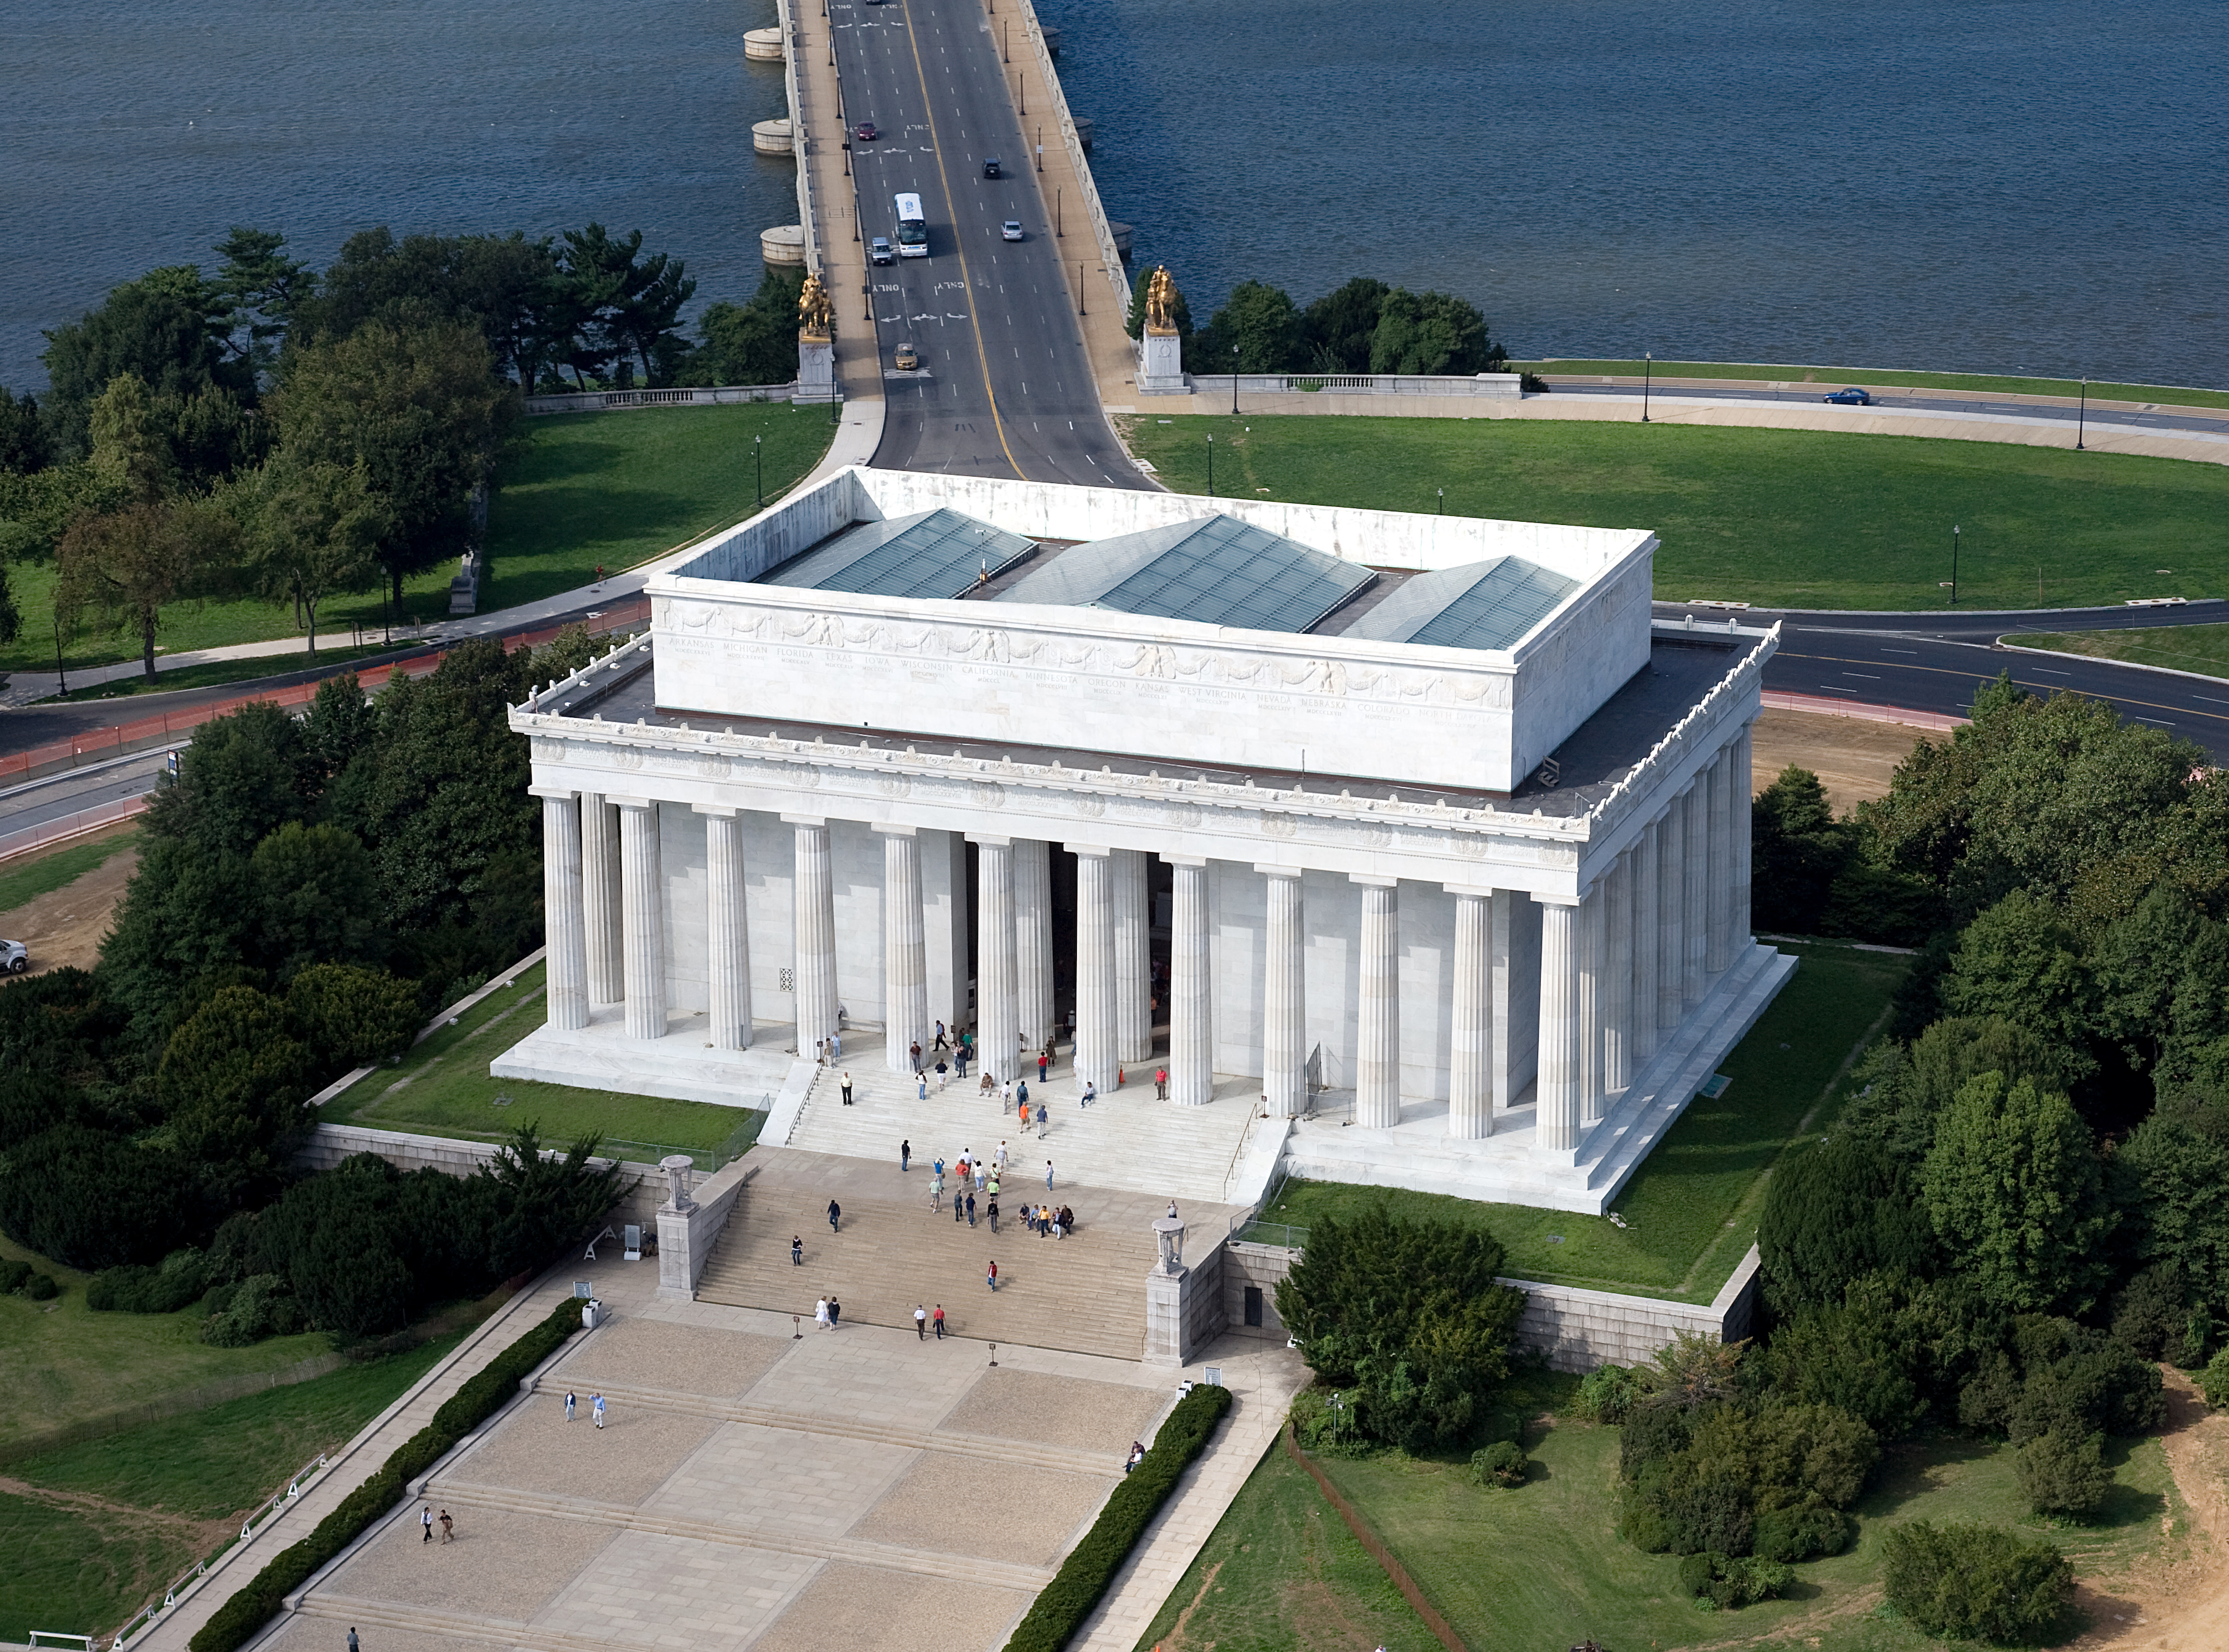 File:Aerial view of Lincoln Memorial - east side.jpg - Wikimedia Commons